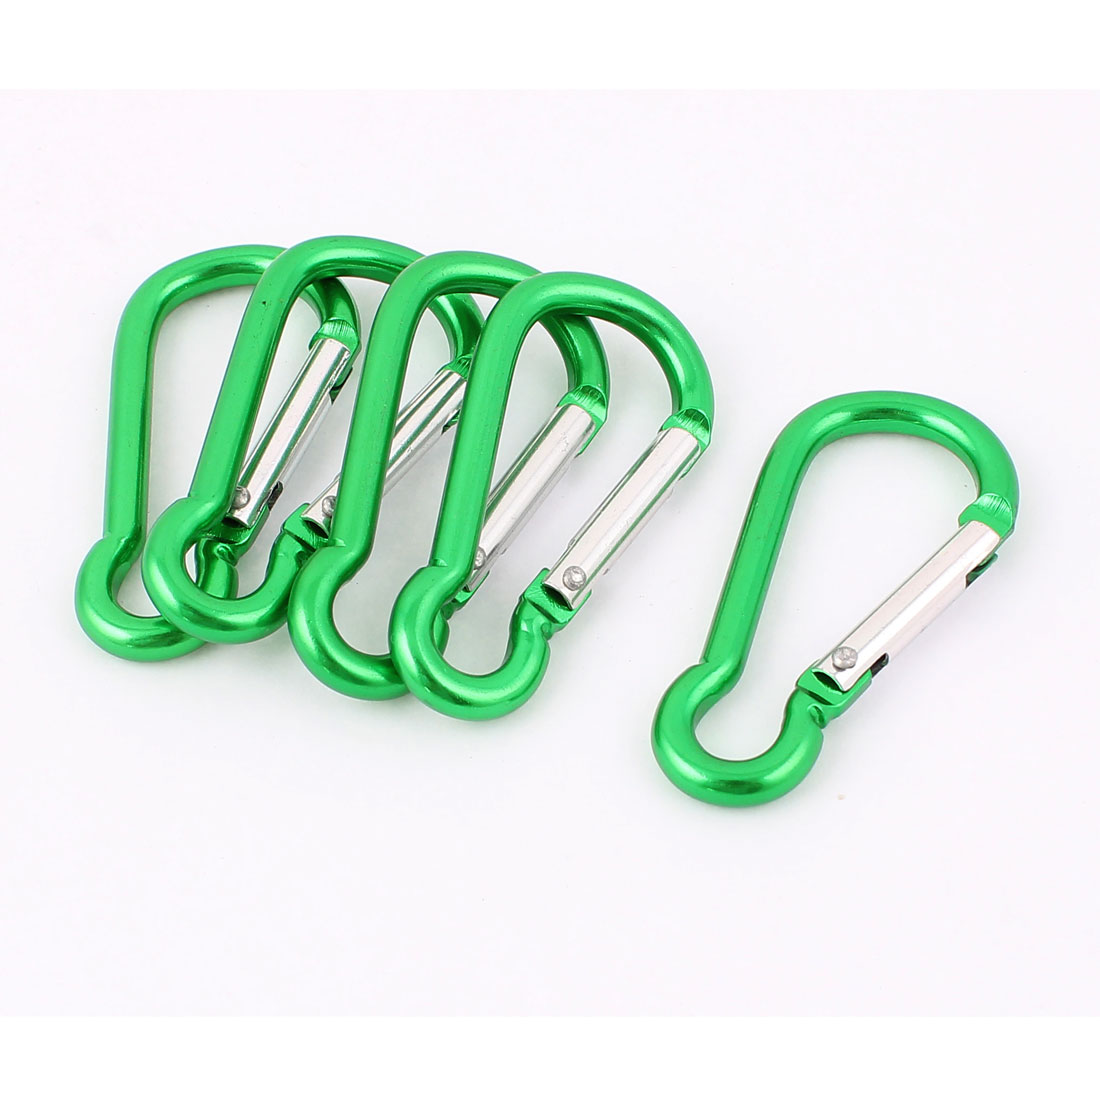 Outdoor Hiking Aluminum Spring Loaded Carabiners Hooks Clip Green 5 Pcs